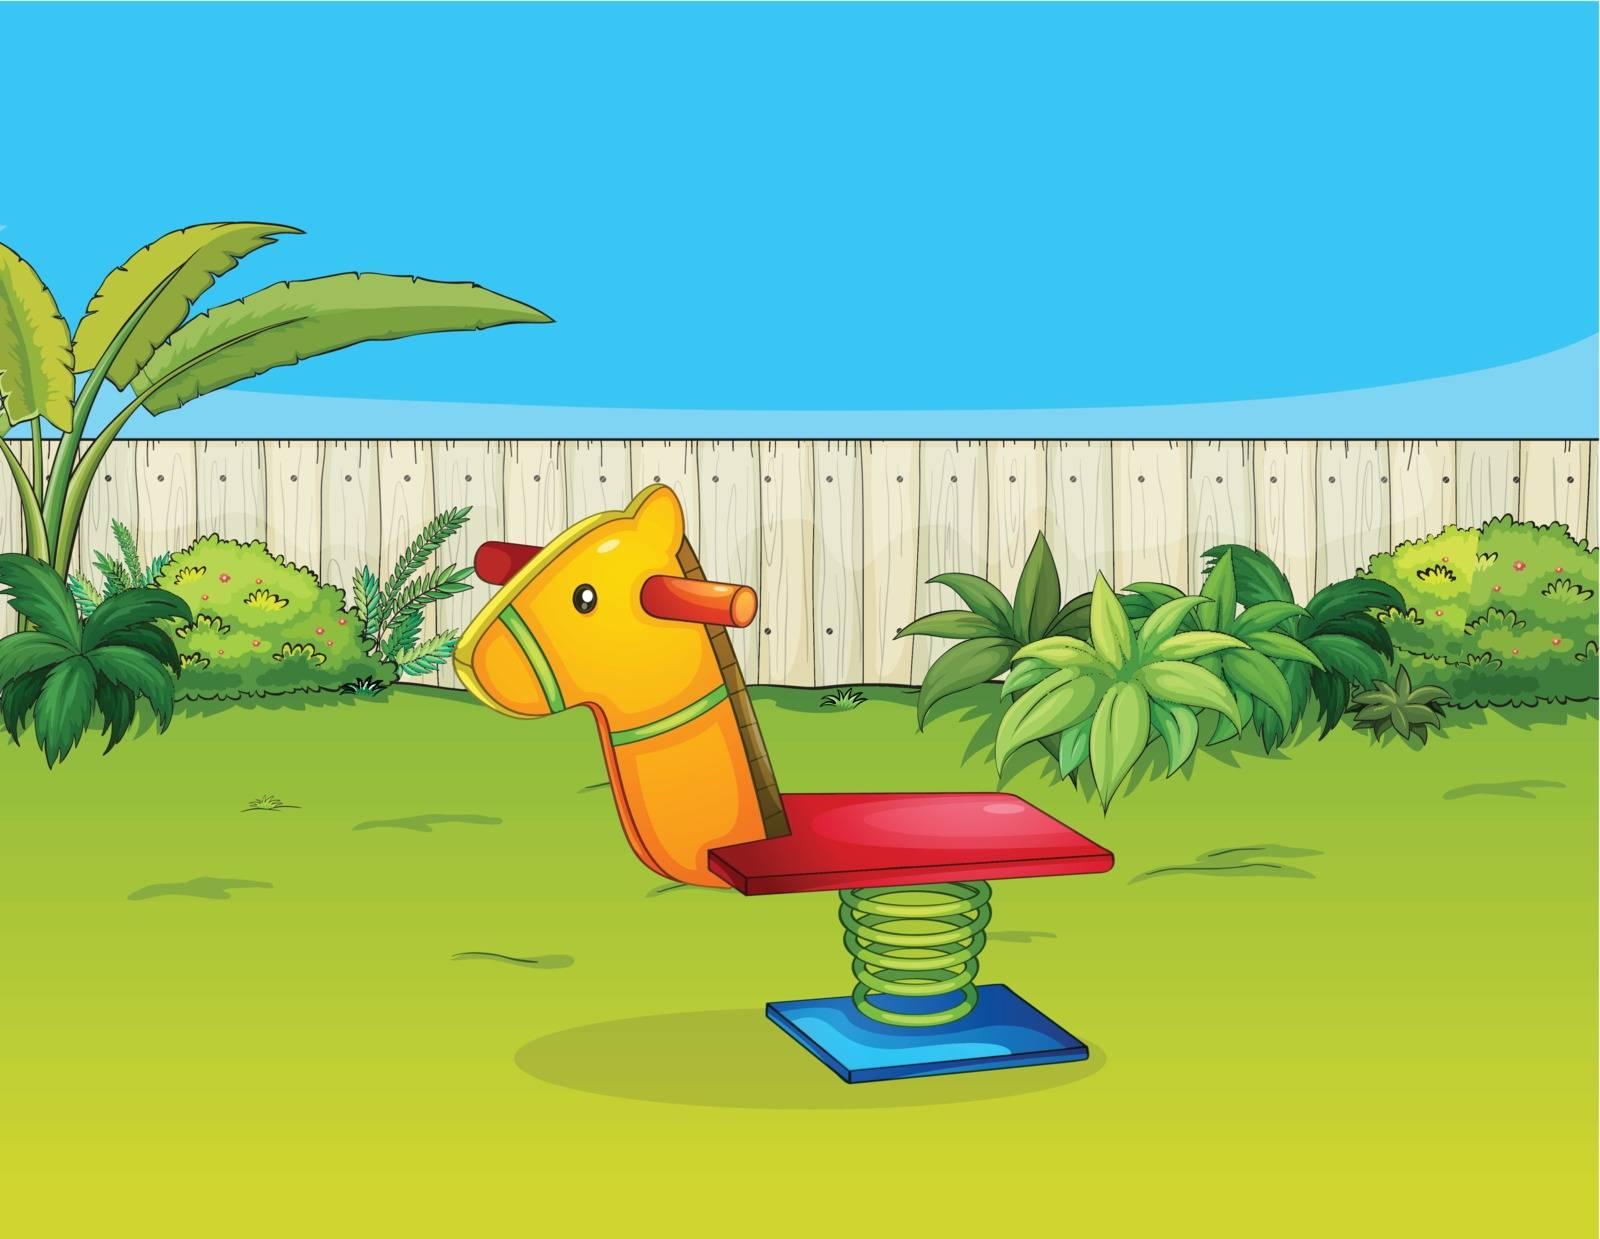 Illustration of a horse playing equipment in a beautiful garden